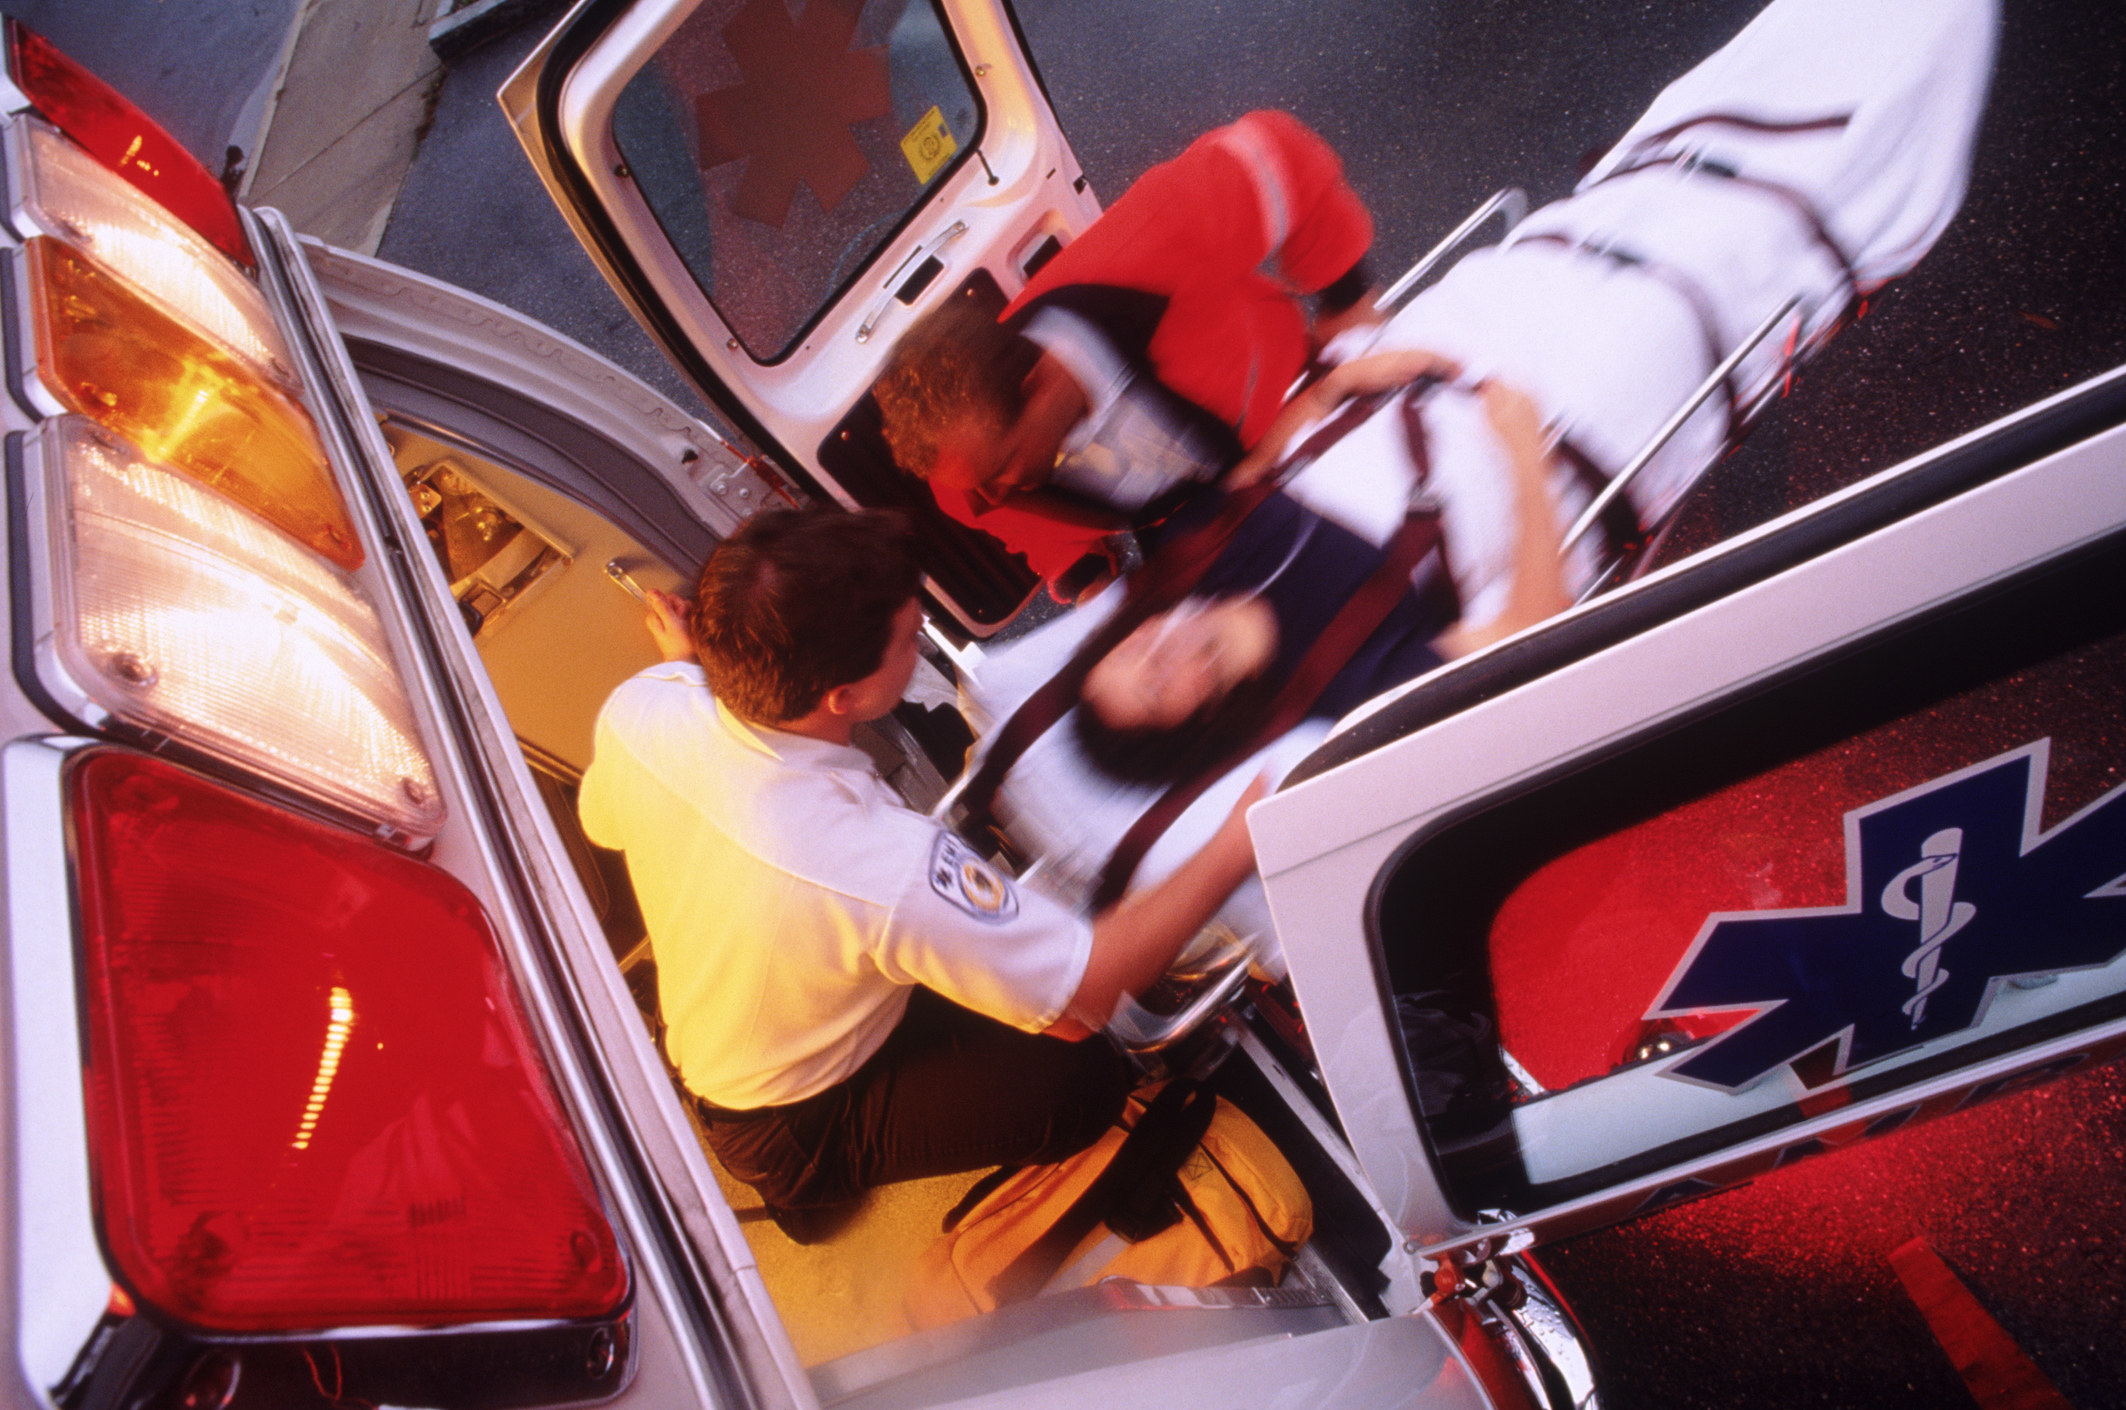 Ambulance workers loading a patient on a stretcher